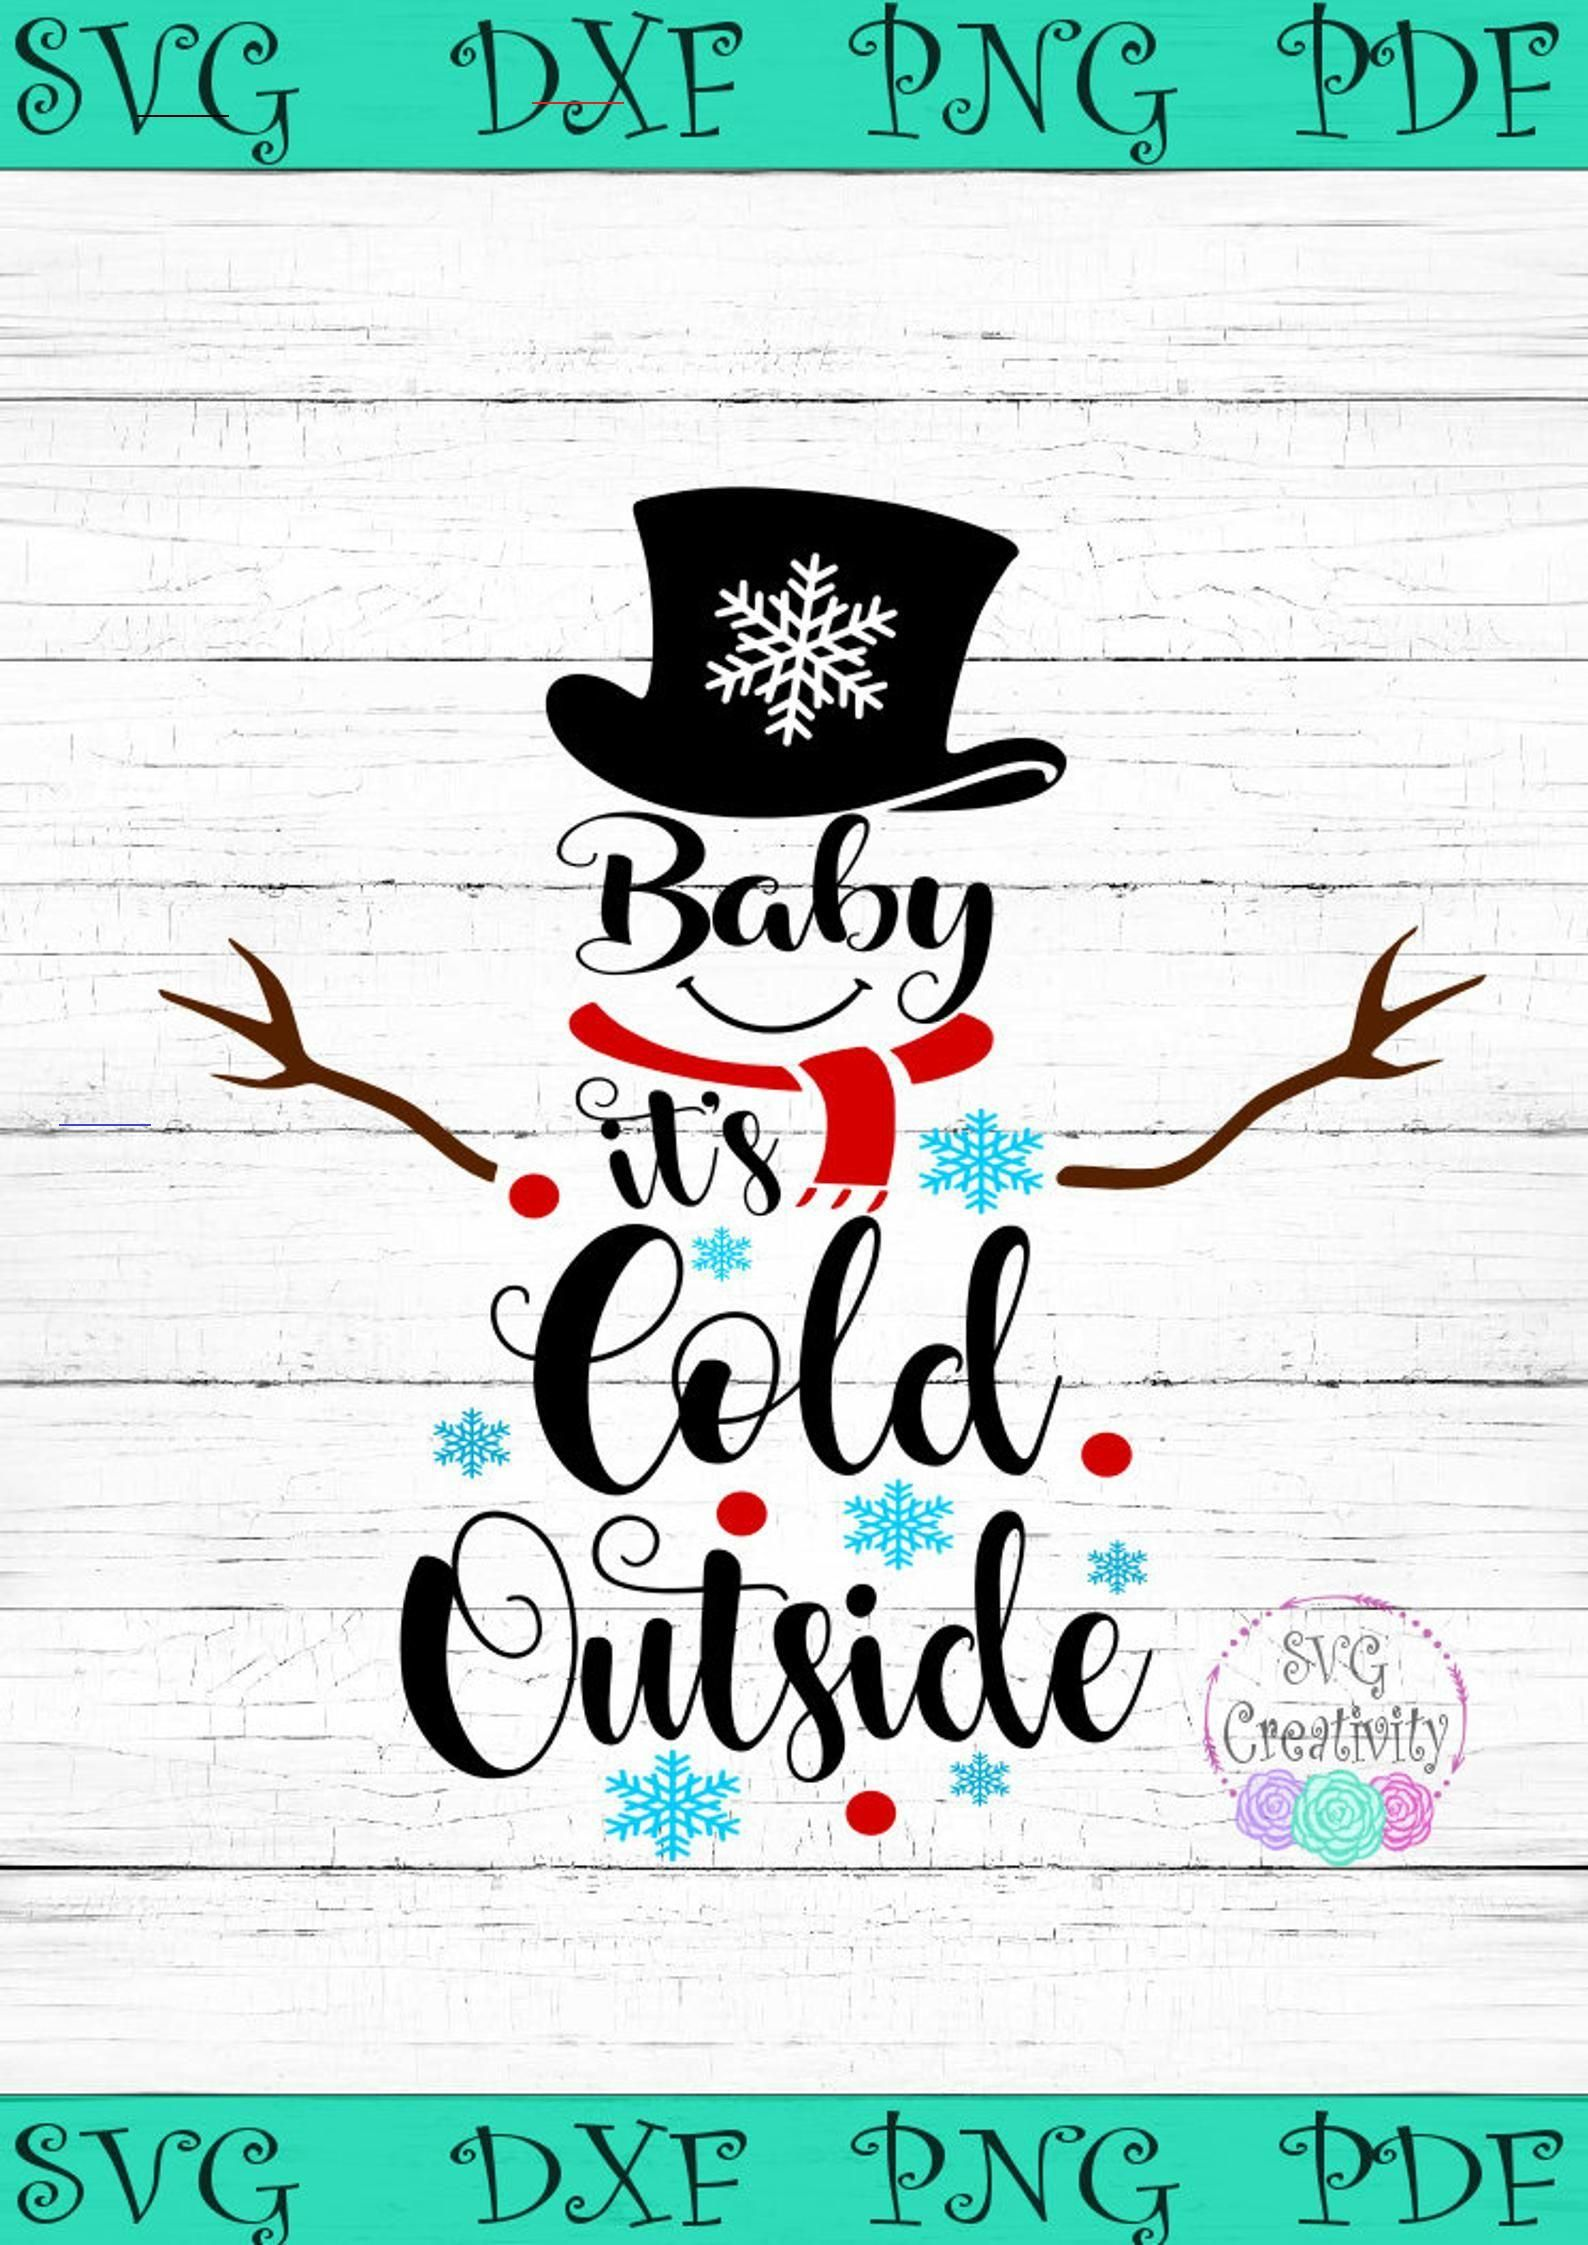 Baby It's Cold Outside SVG, Cold Outside Snowman SVG, Baby